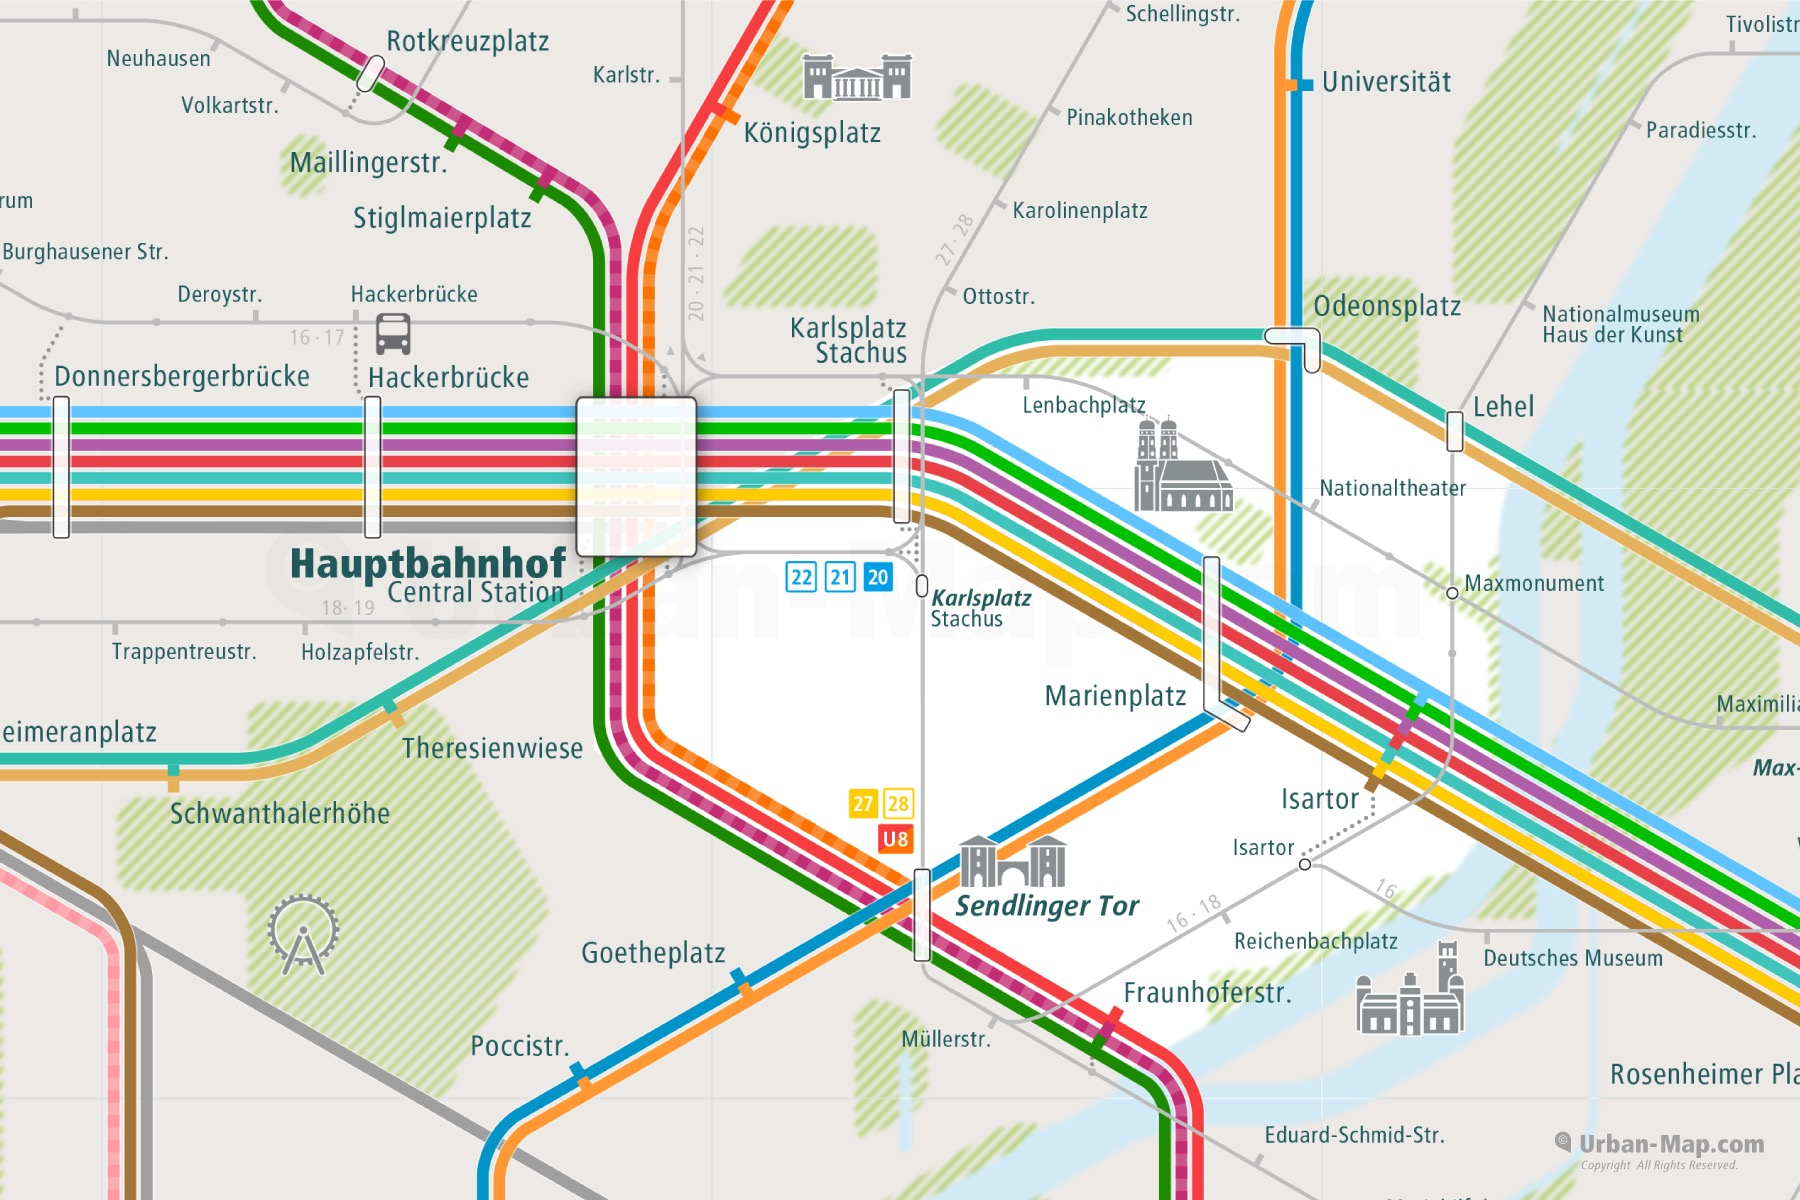 Munich City Rail Map shows the train and public transportation routes of - Close-Up